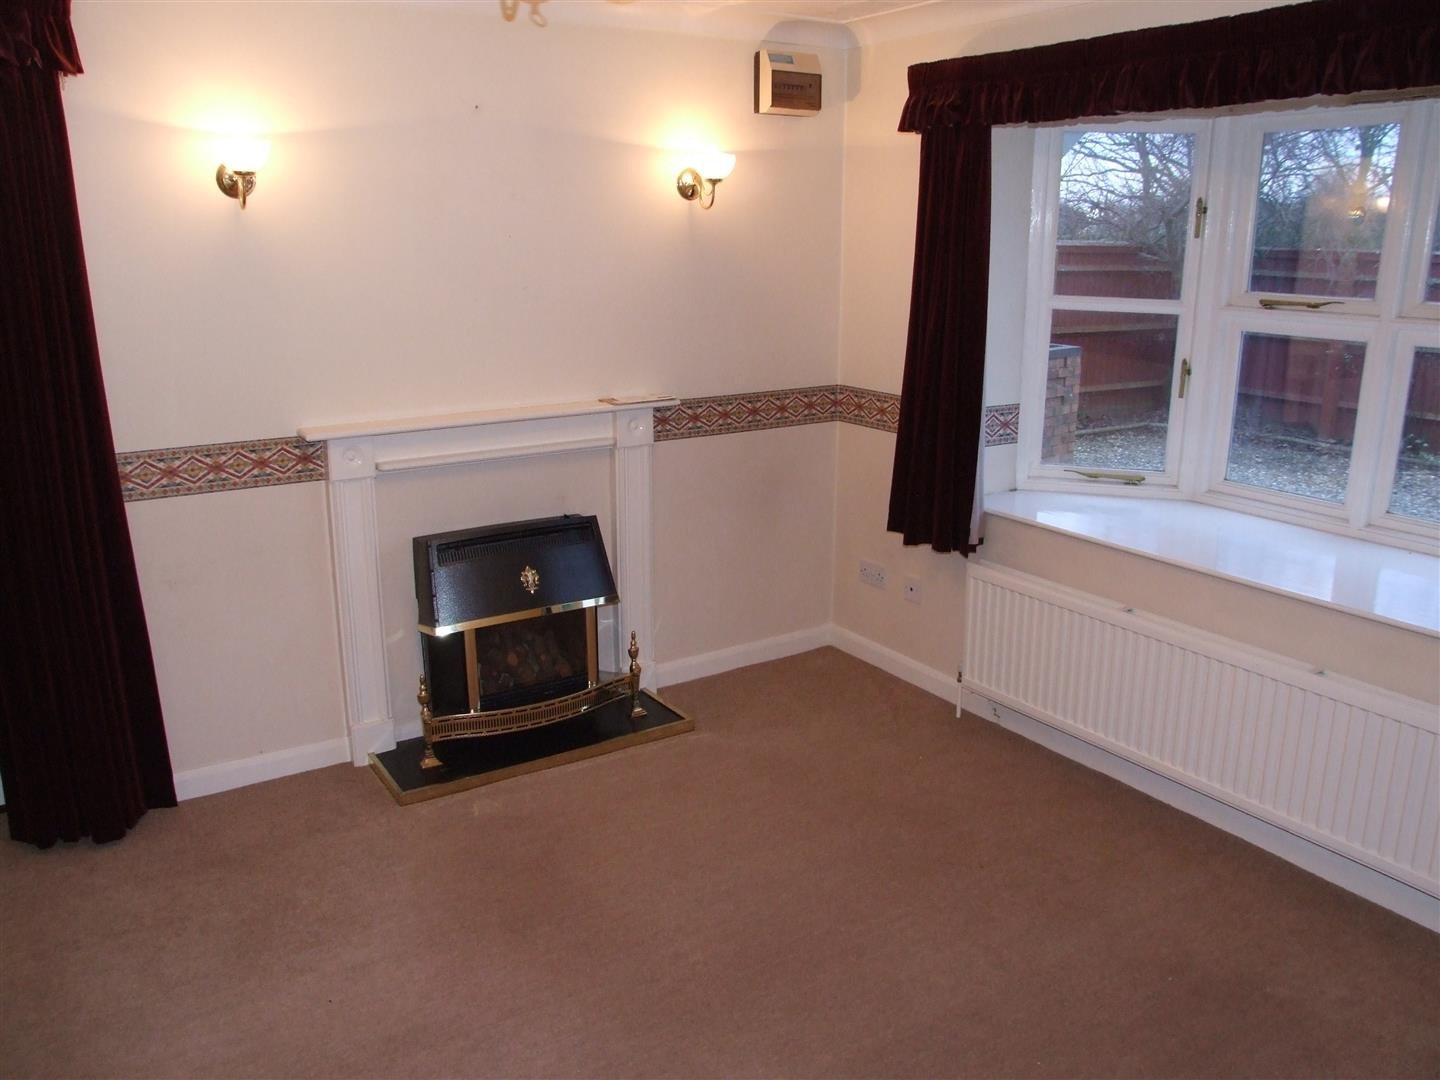 1 bed house to rent in Long Sutton Spalding, PE12 9RR, PE12